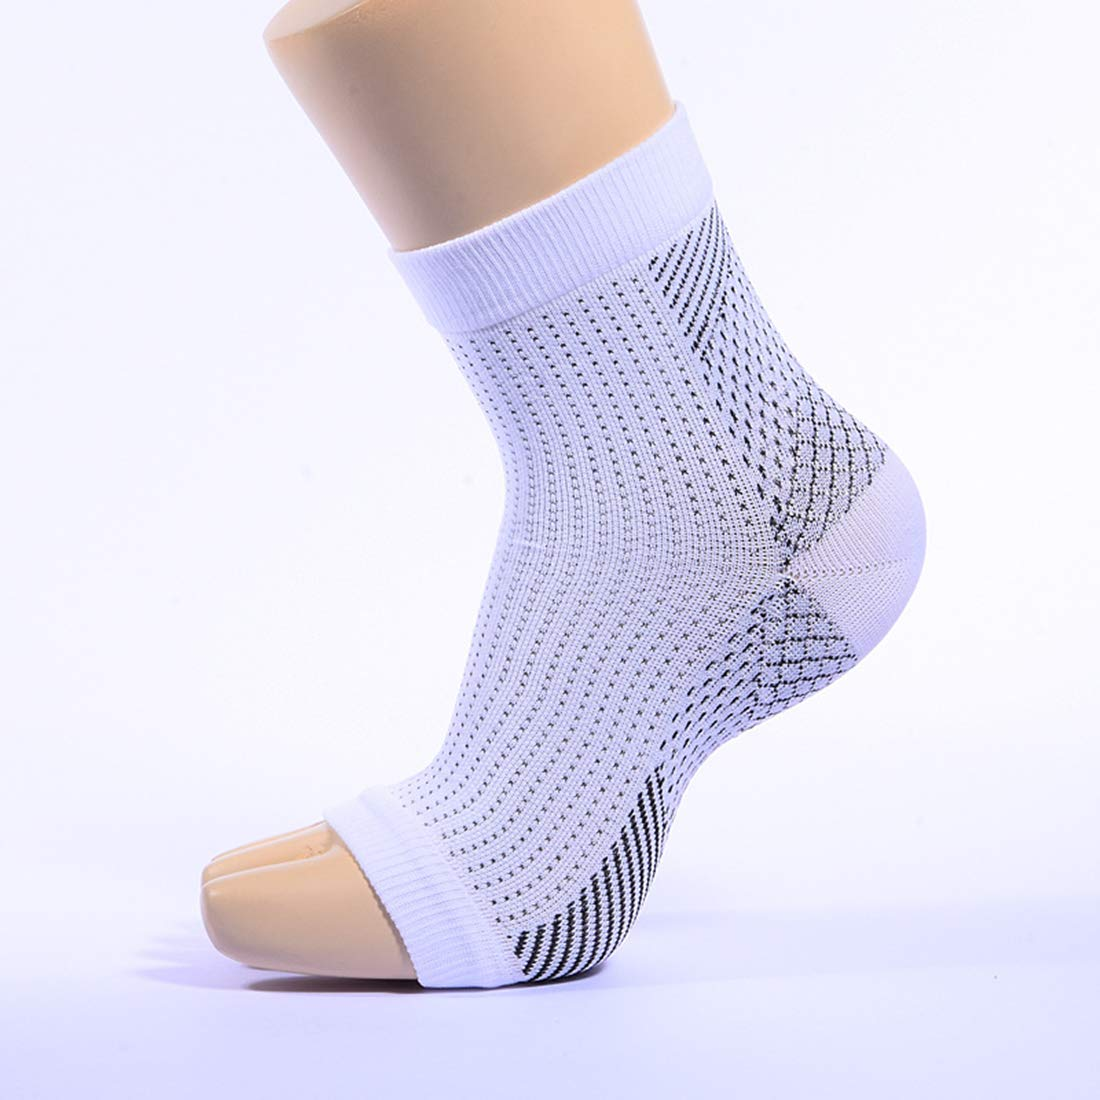 Compression Foot Sleeves for Men & Women MOCOFO 2 Paris Plantar Fasciitis Socks for Plantar Fasciitis Pain Relief, Heel Pain, and Treatment for Everyday Use with Arch Support (White, Large)